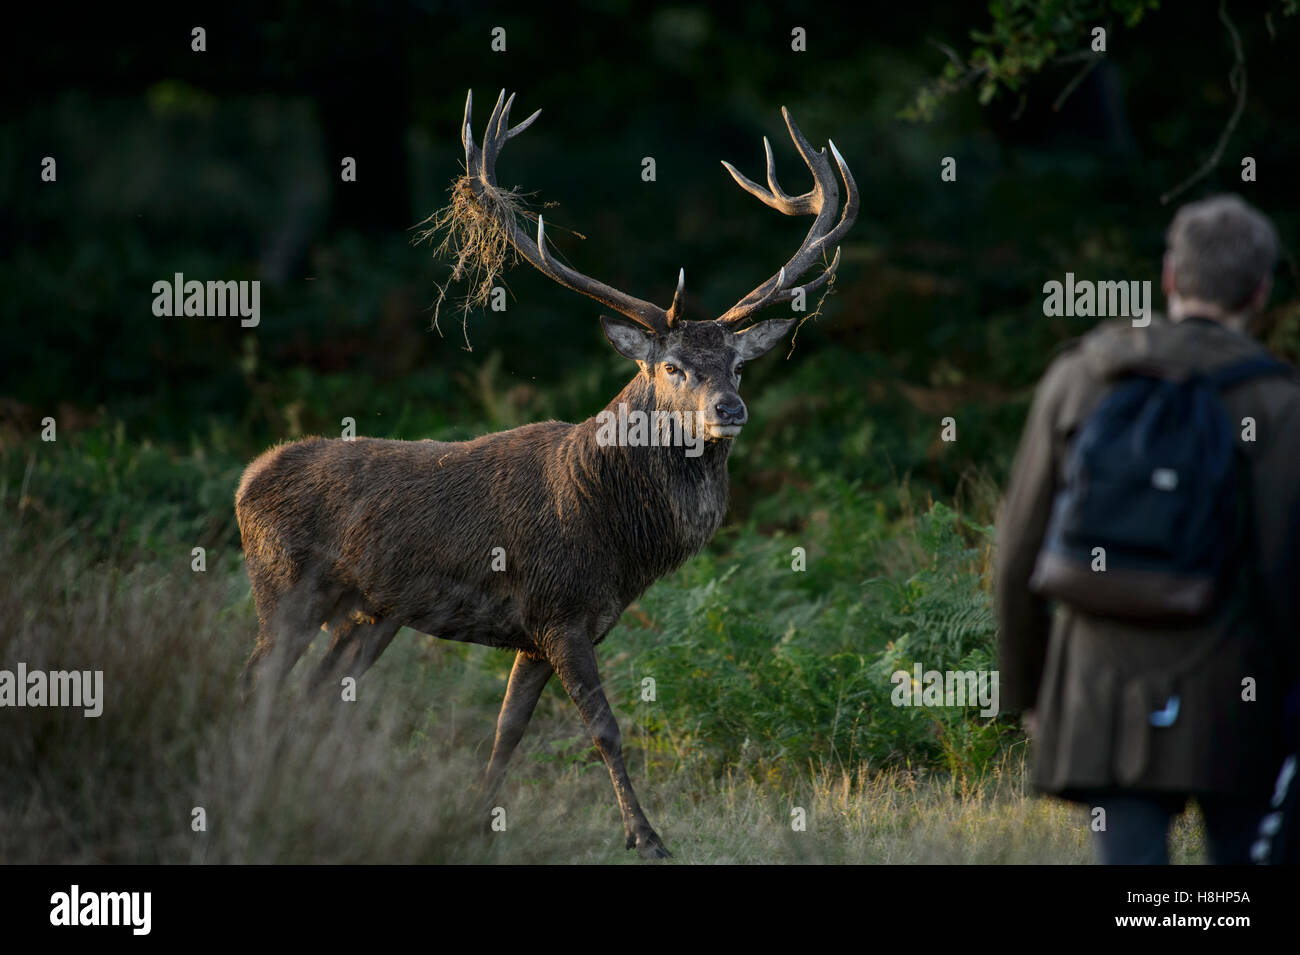 Red deer stag in Richmond Park, London, with offensive behavior towards a tourist walking too close - Stock Image